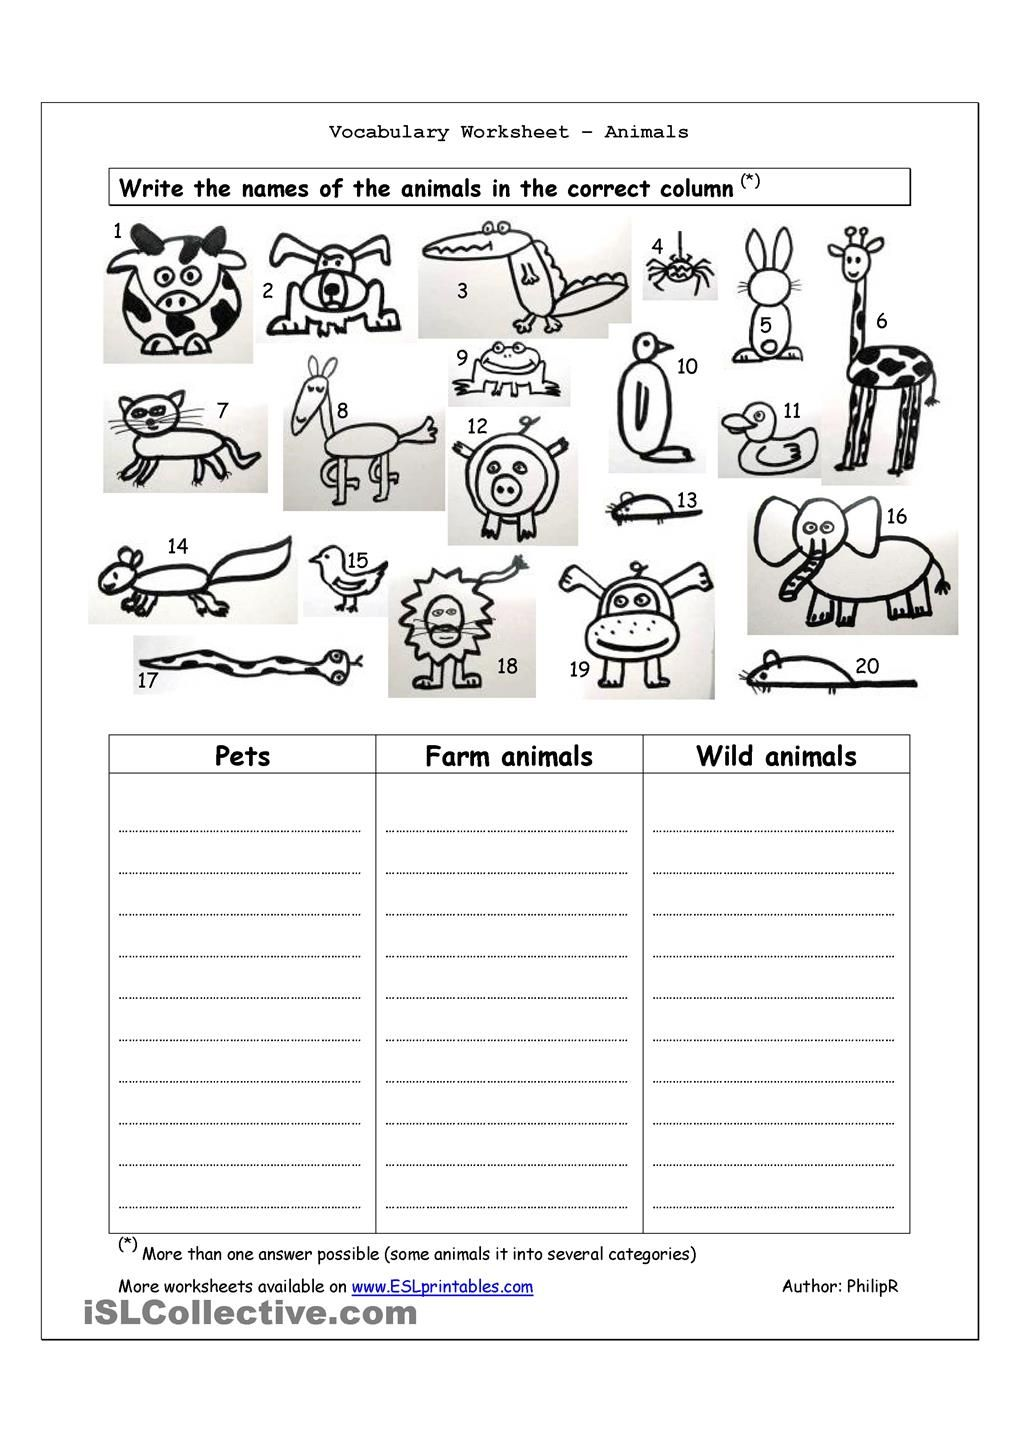 vocabulary worksheet animals english 4th grade englanti. Black Bedroom Furniture Sets. Home Design Ideas